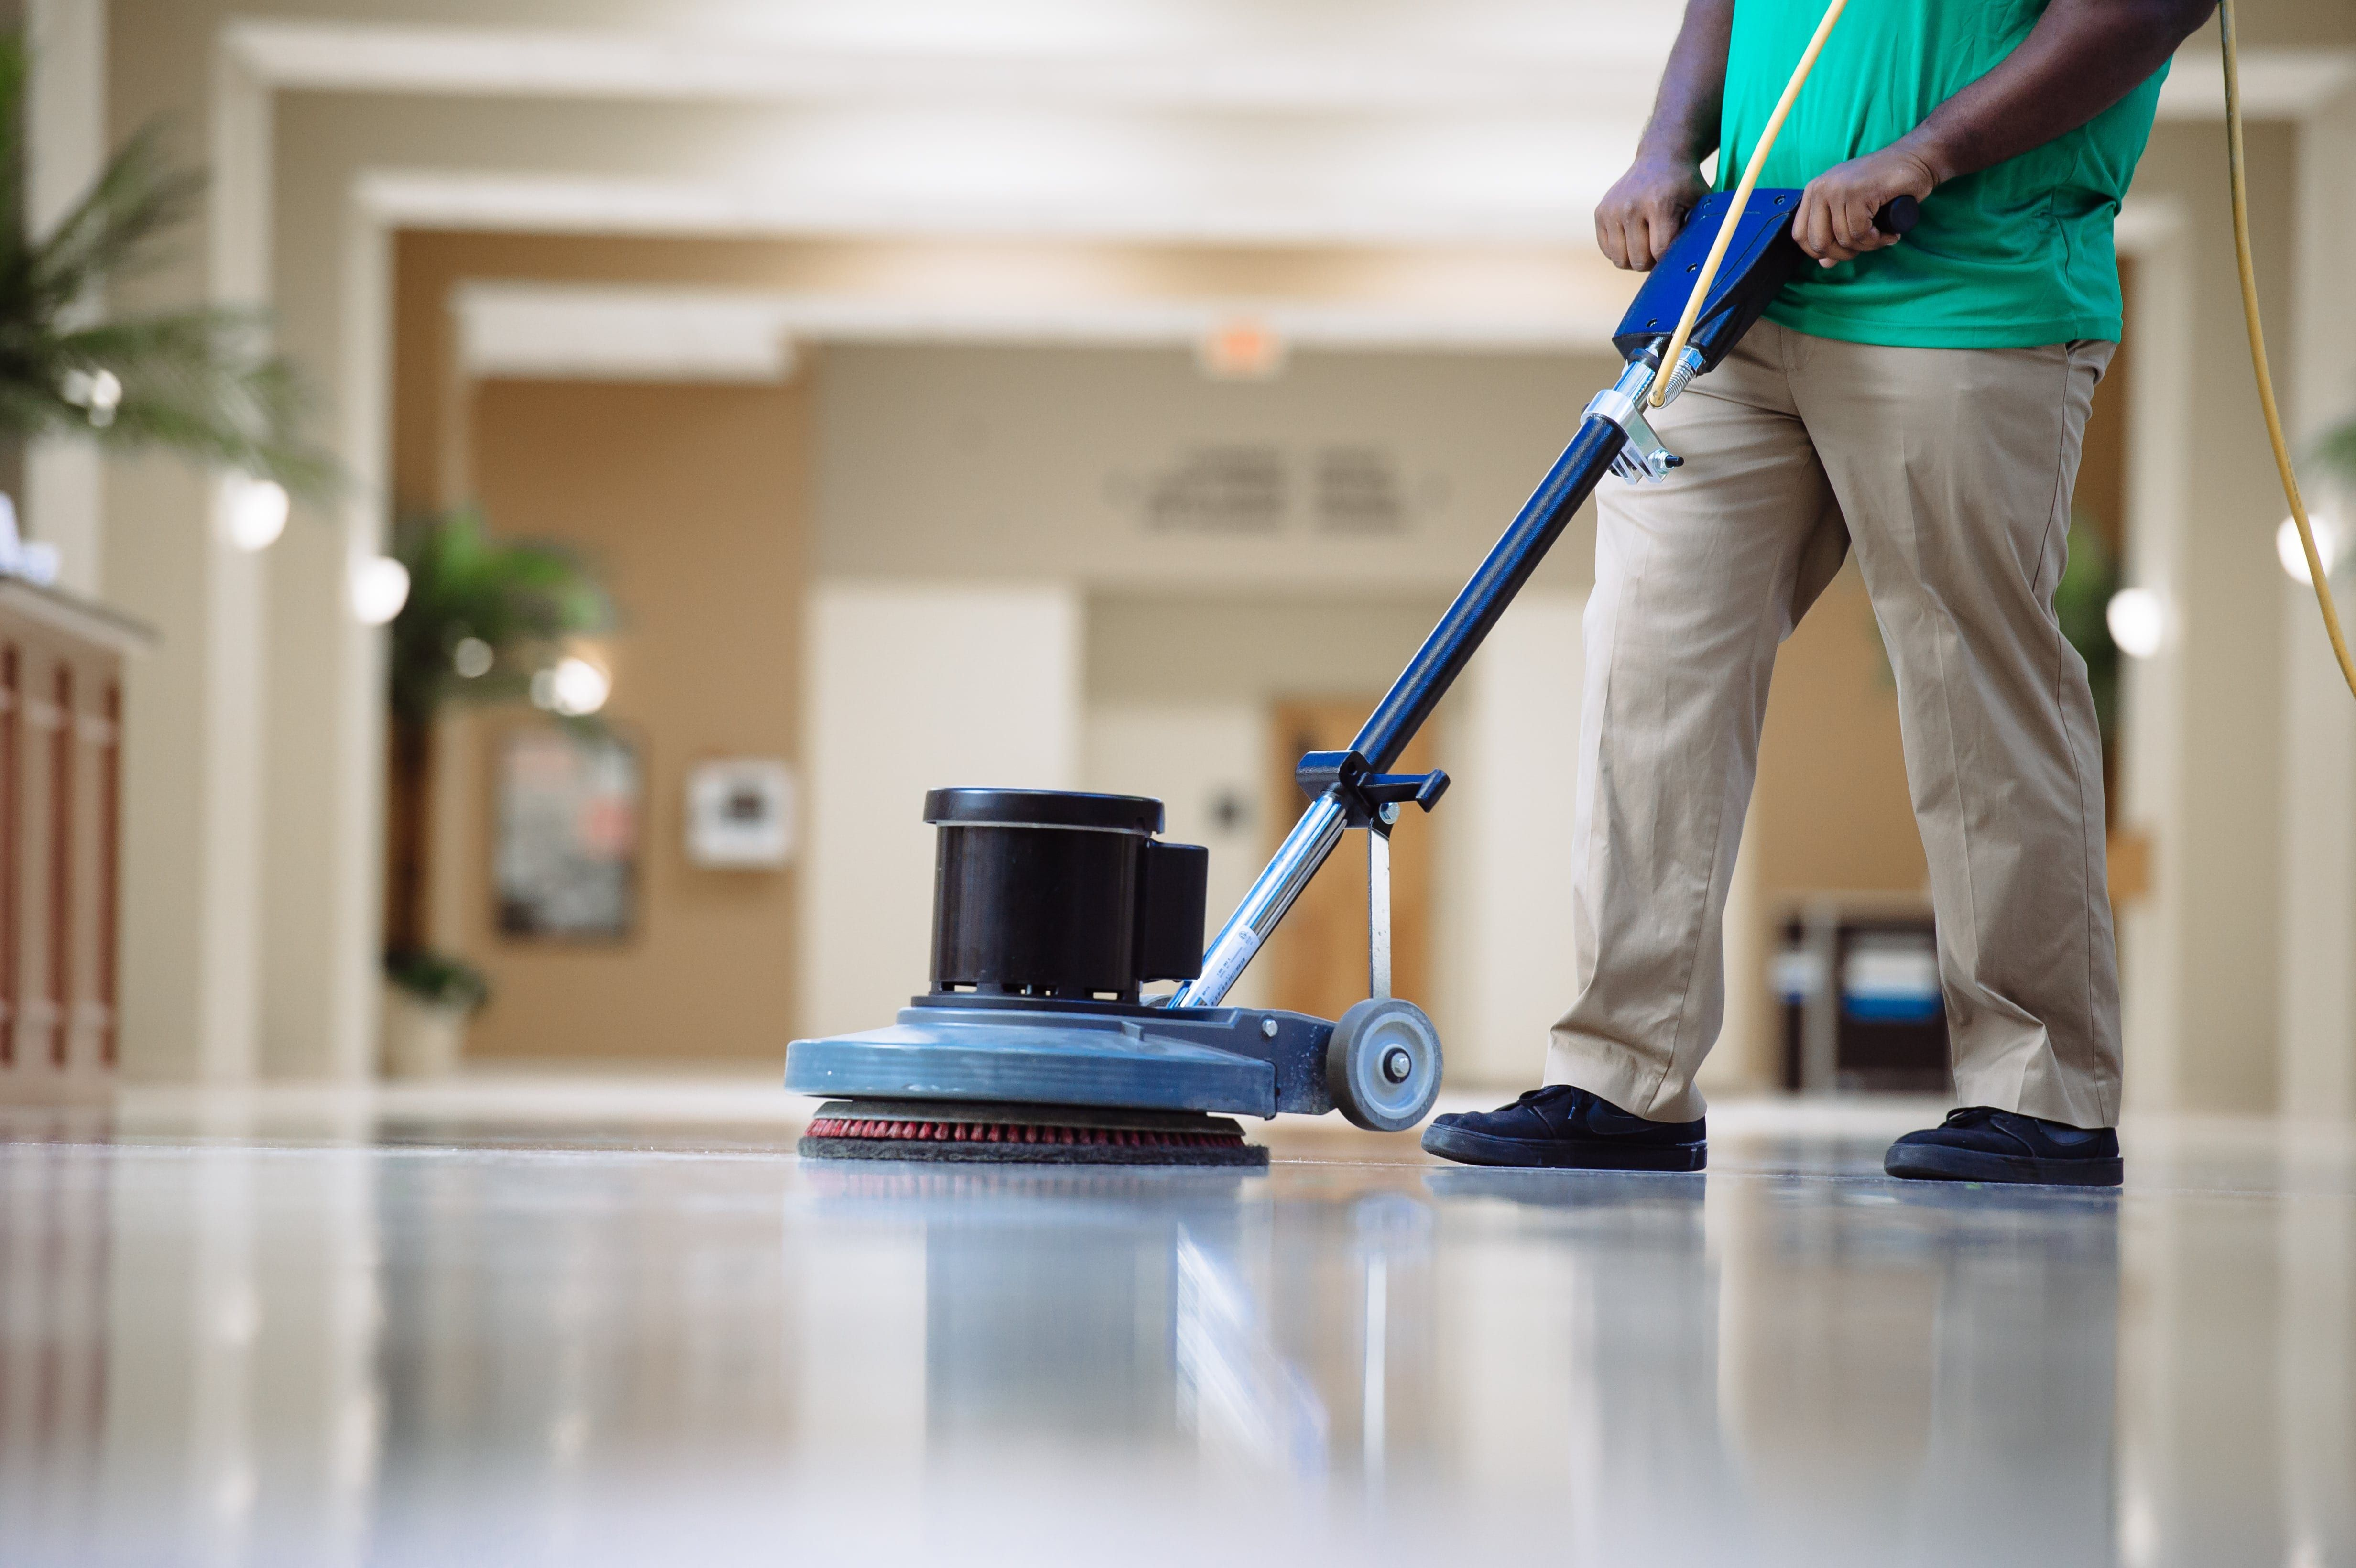 The Best 15 Pics Of Carpet Cleaning Services In Pensacola Fl And Description In 2020 Commercial Cleaning Commercial Cleaning Services Cleaning Service